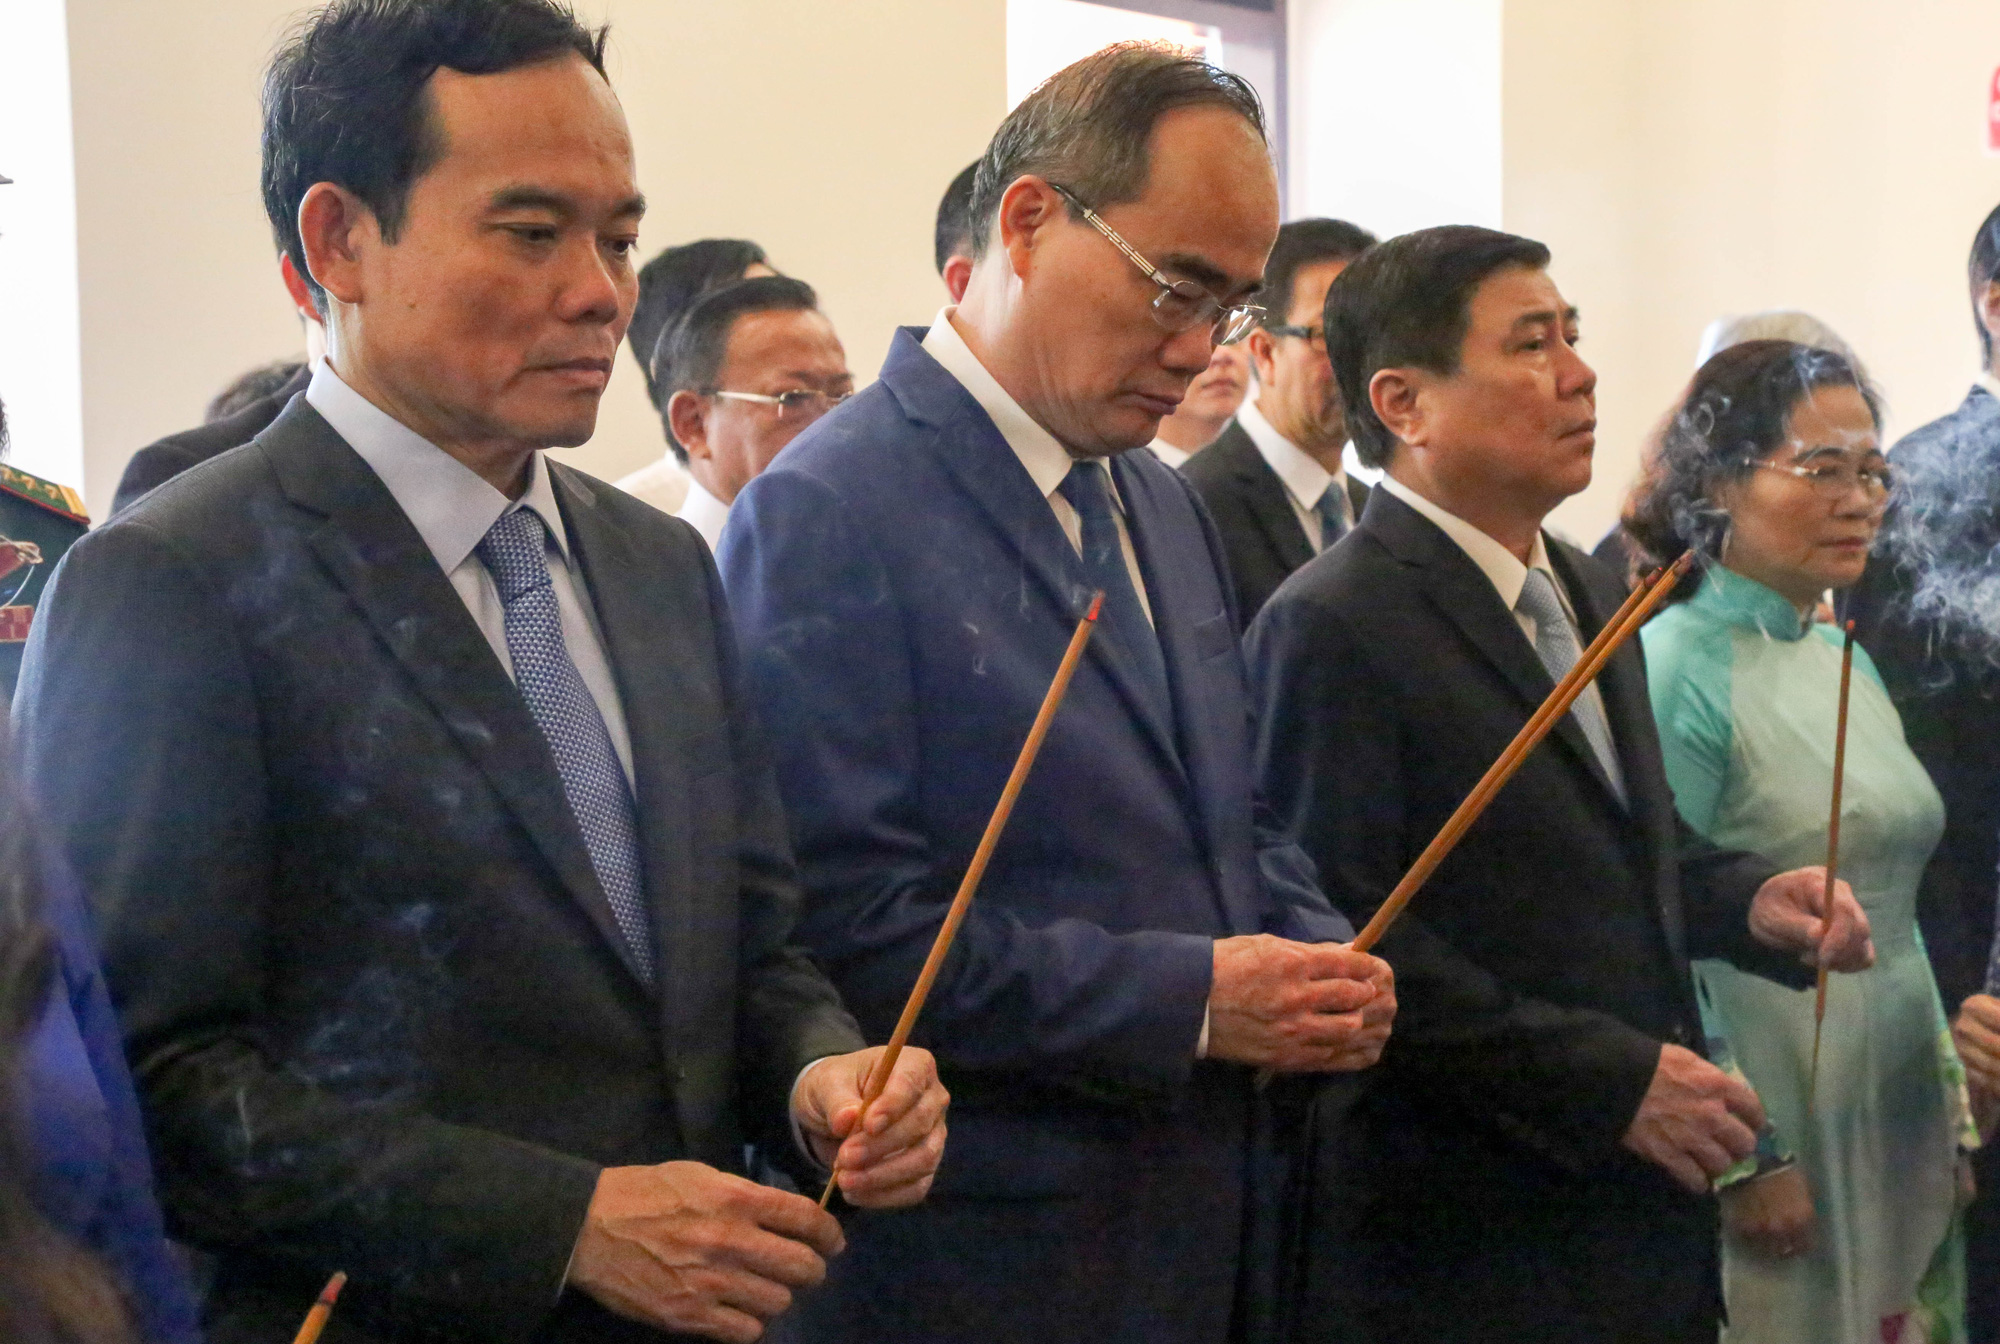 From left: Deputy Secretary of the Party Committee Tran Luu Quang, Secretary of the Party Committee Nguyen Thien Nhan, Chairman of the People's Committee Nguyen Thanh Phong, and Chairwoman of the People's Council Nguyen Thi Le. Photo: Thao Le / Tuoi Tre